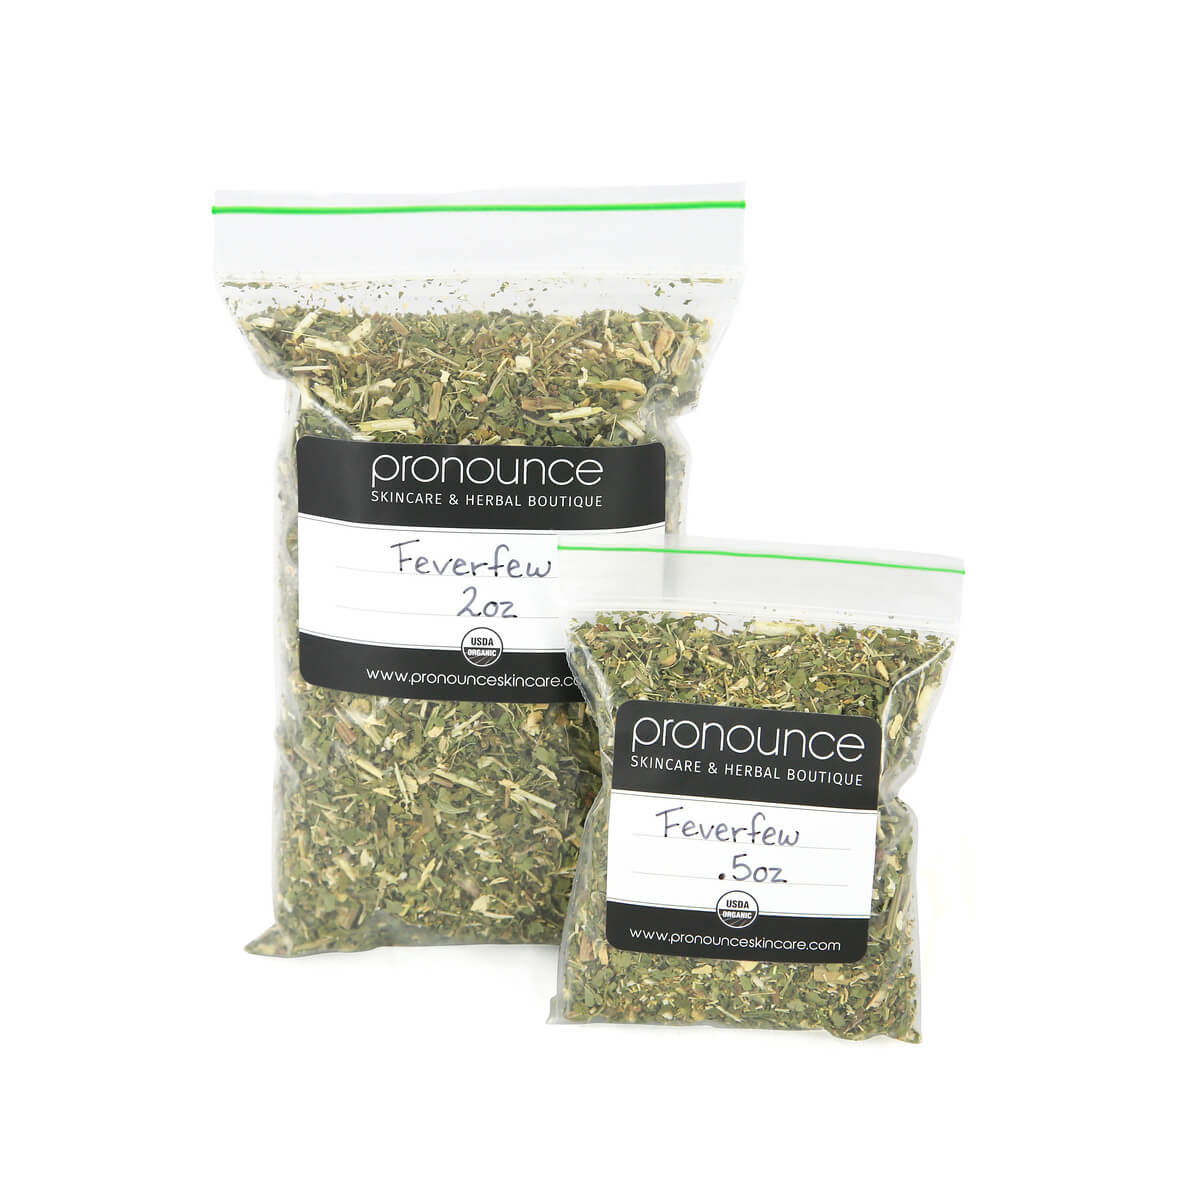 Certified Organic Feverfew 2 Sizes Pronounce Skincare & Herbal Boutique